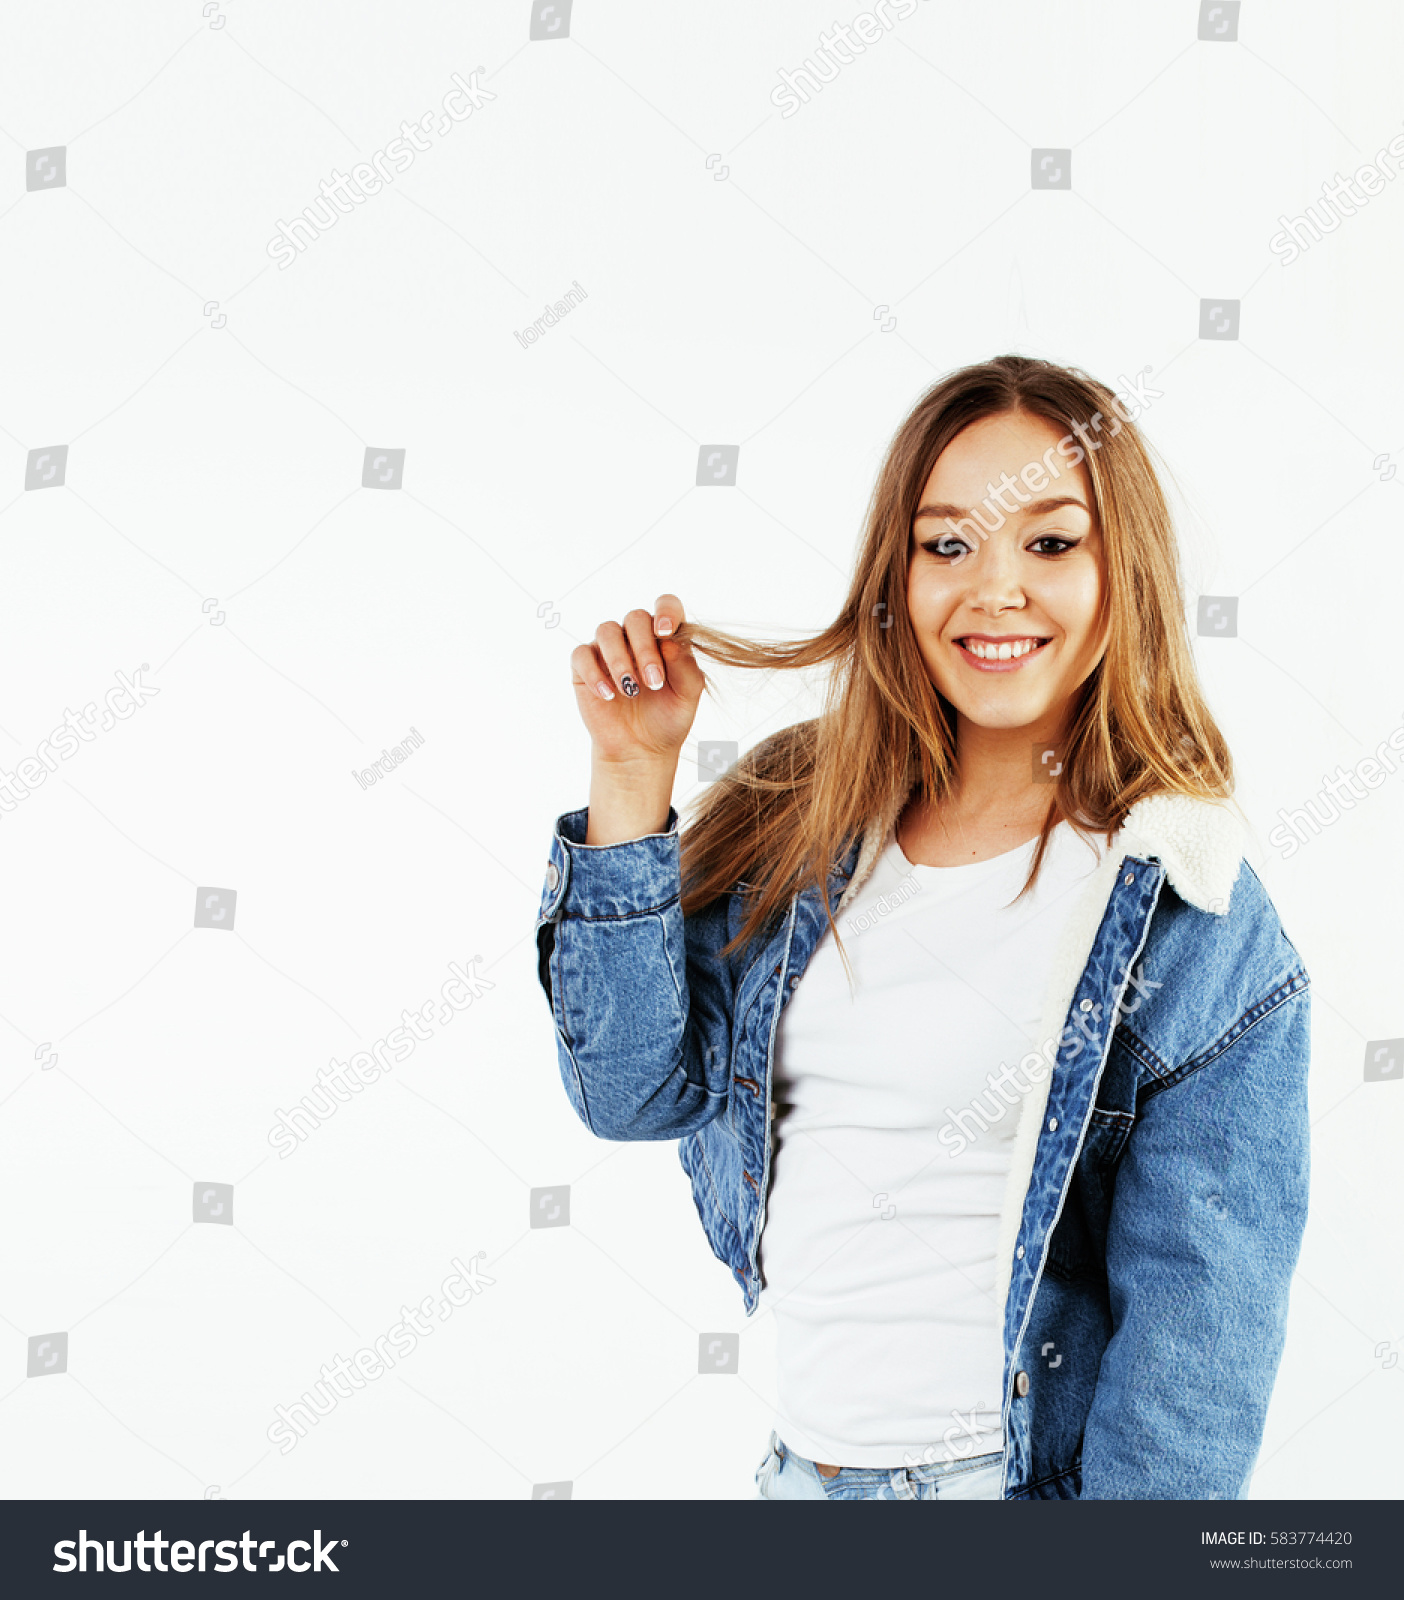 the latest e4520 70fde young pretty teenage hipster girl posing emotional happy smiling on white  background, lifestyle people concept